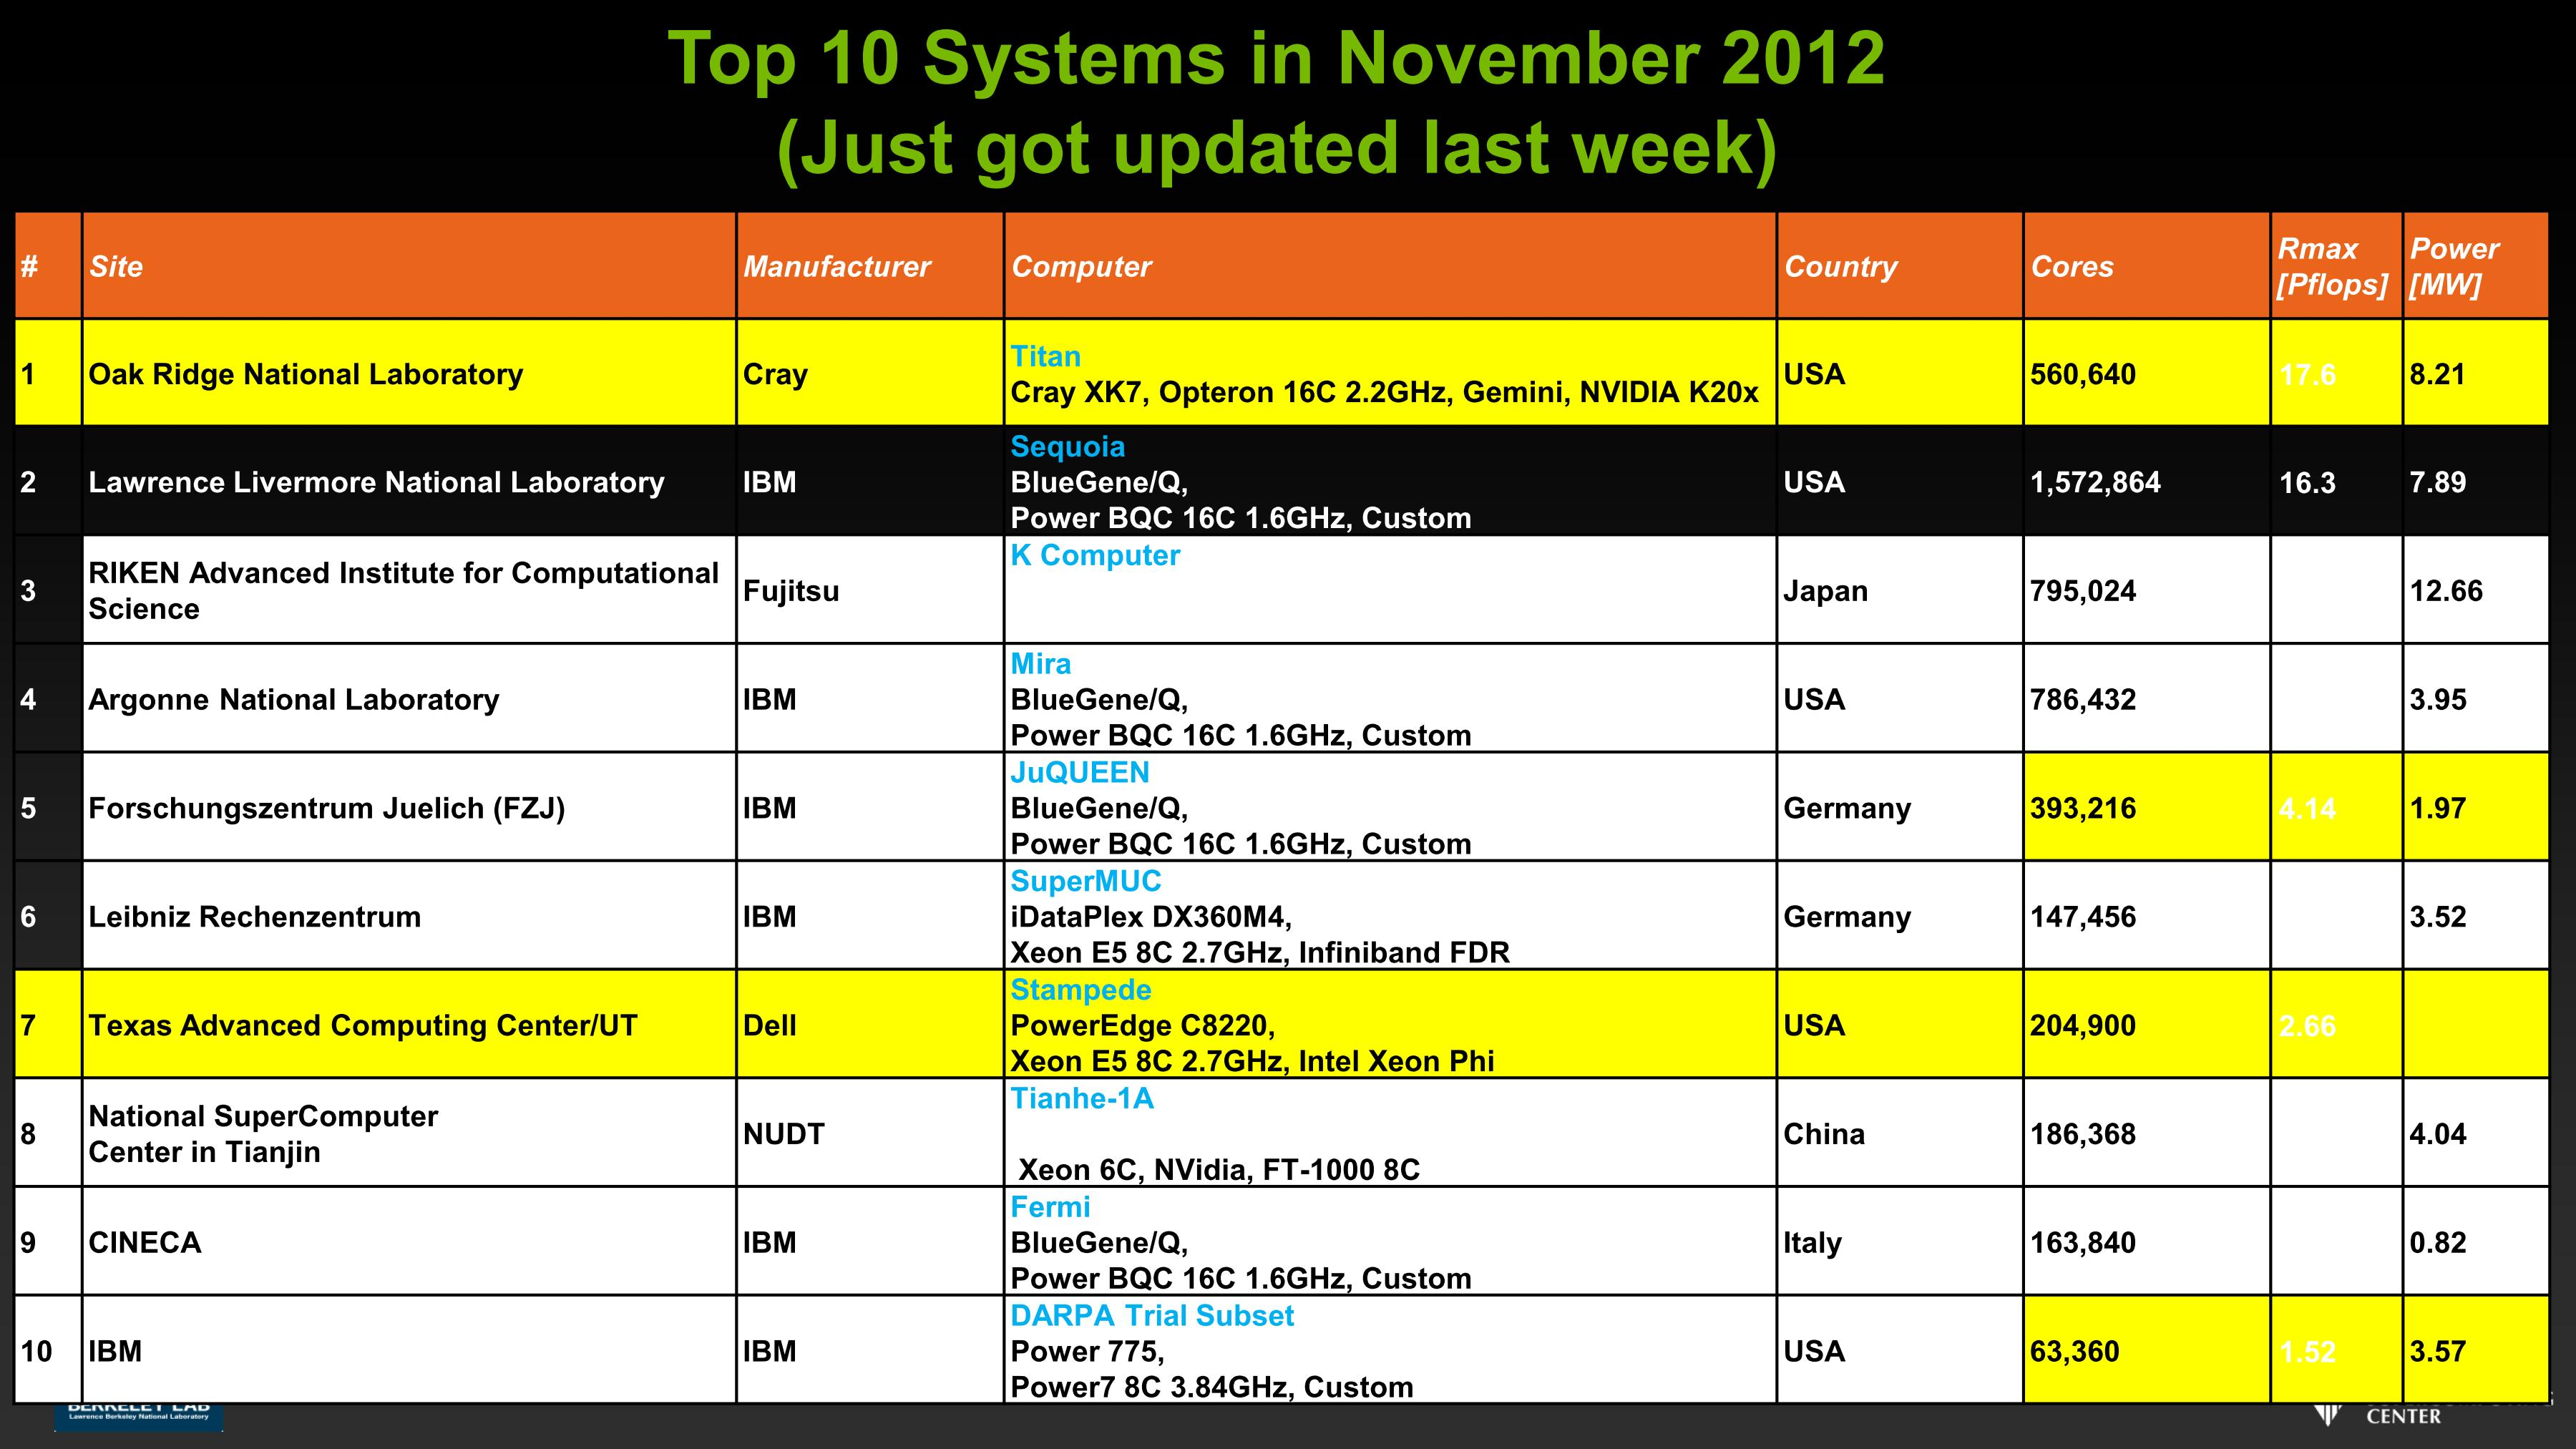 Top 10 Systems in November 2012 (Just got updated last week)